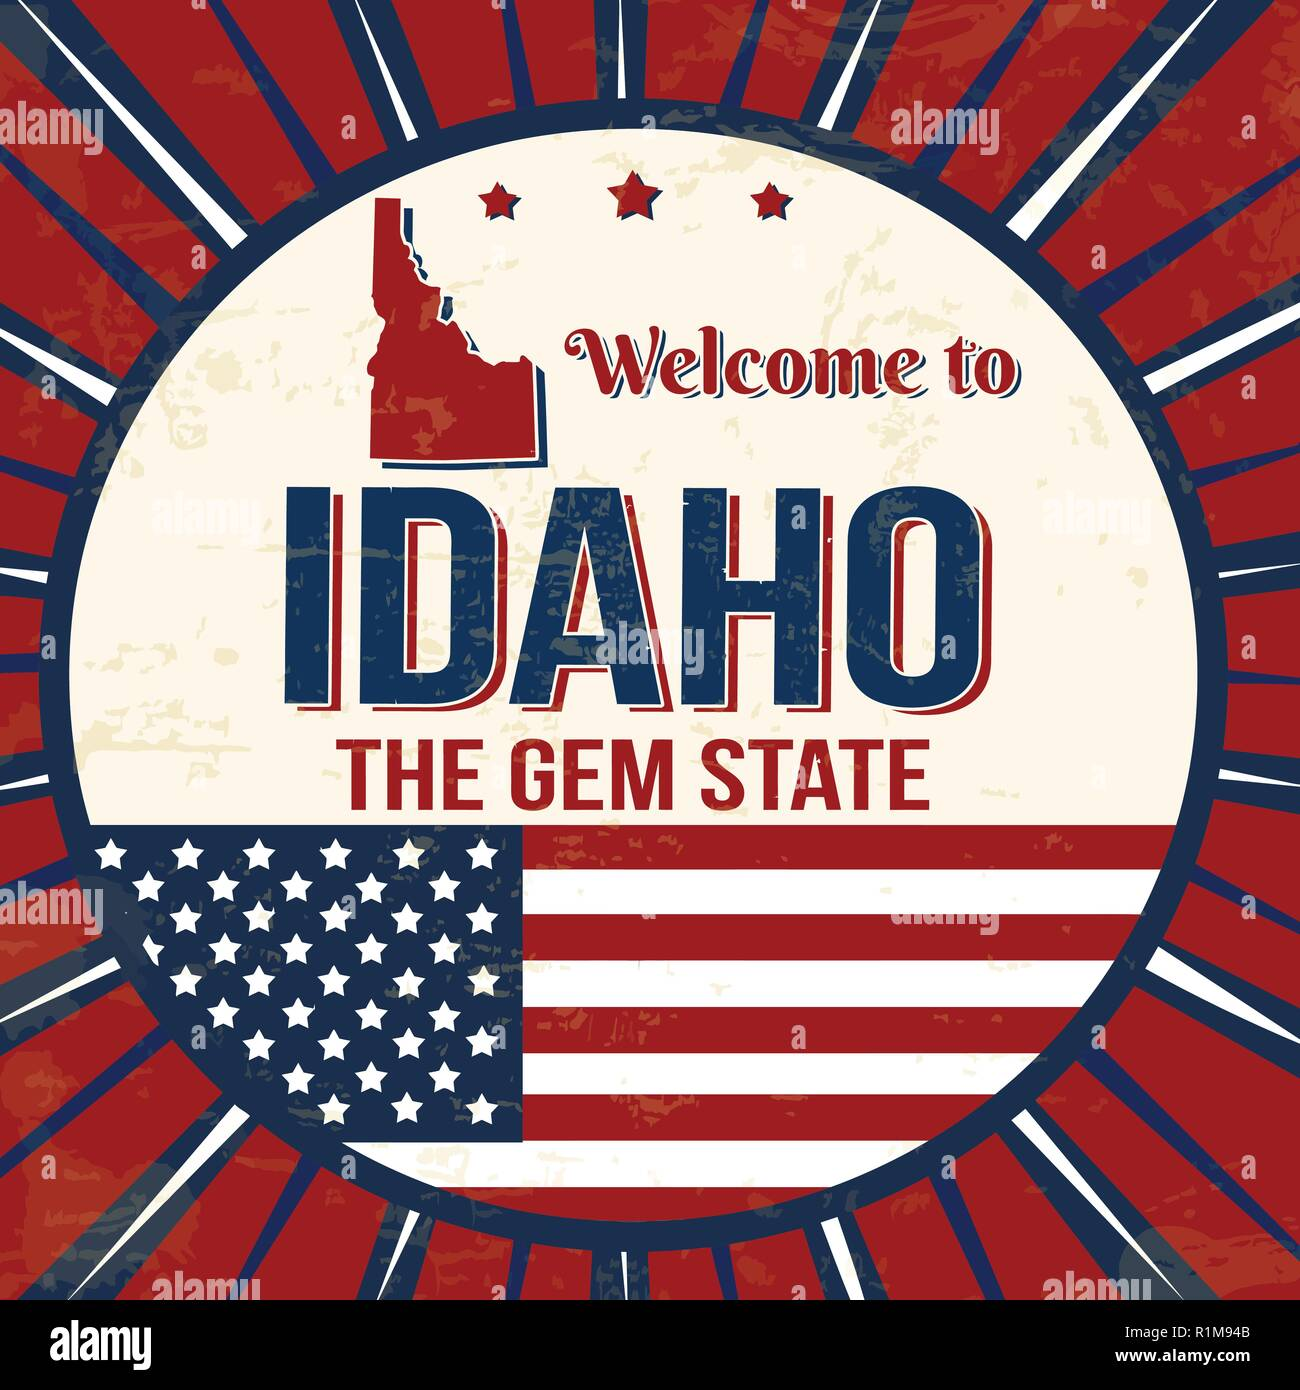 Welcome to Idaho vintage grunge poster, vector illustrator - Stock Vector